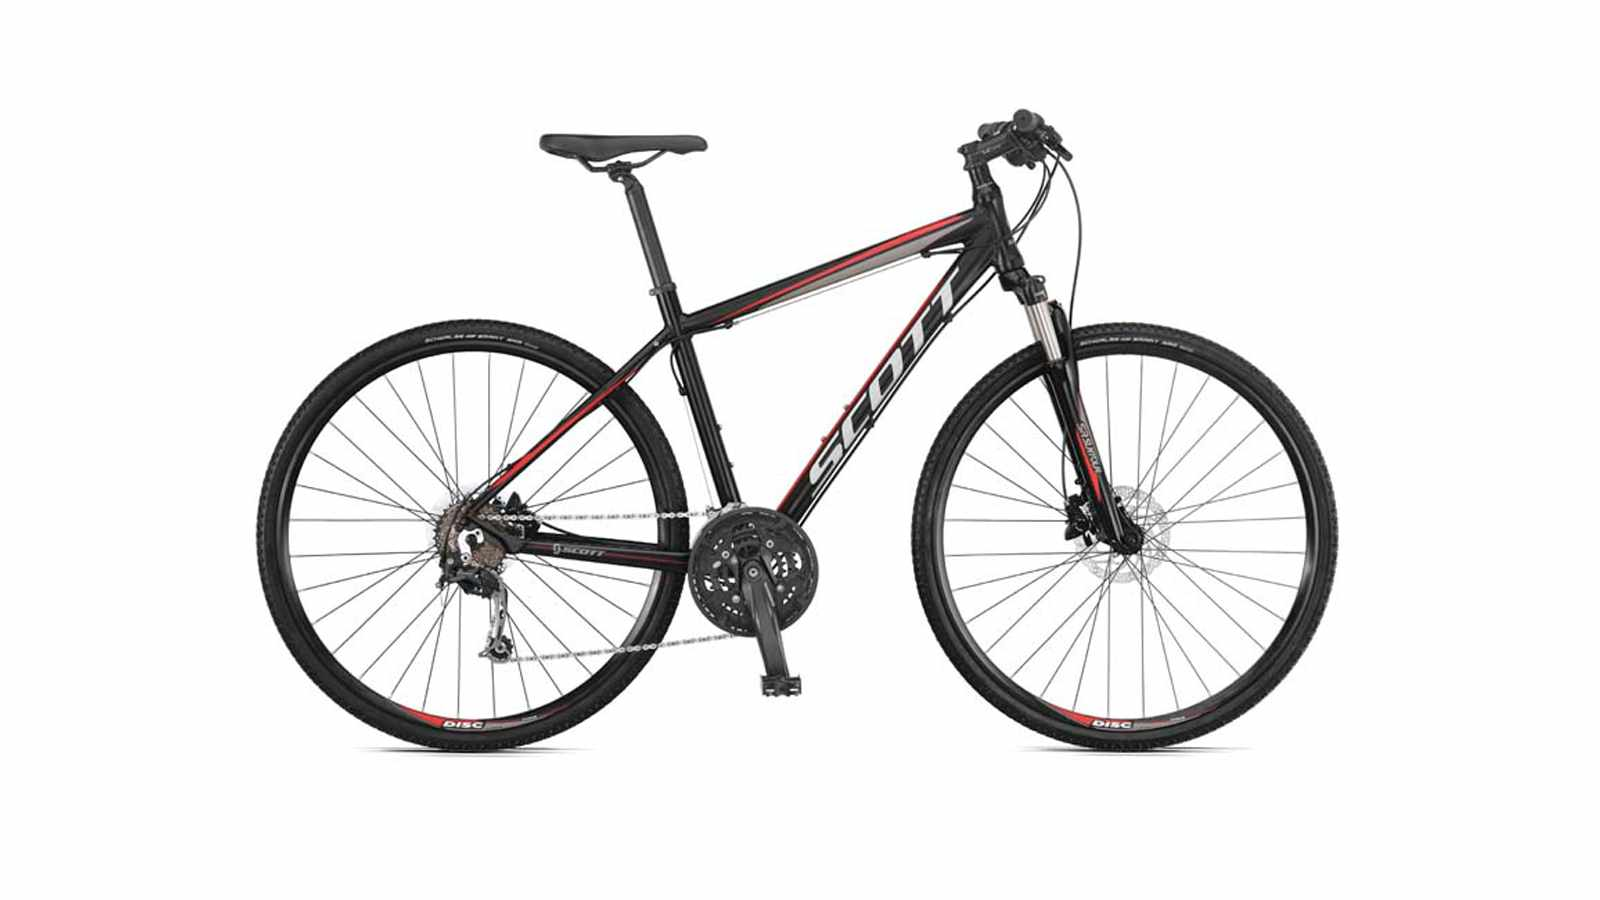 Bicycle manufactures Scott and Trek have recalled 2011 through 2013 model year bikes equipped with SR Suntour suspension forks. Fork affected by this recall can break, posing a crash hazard to the rider